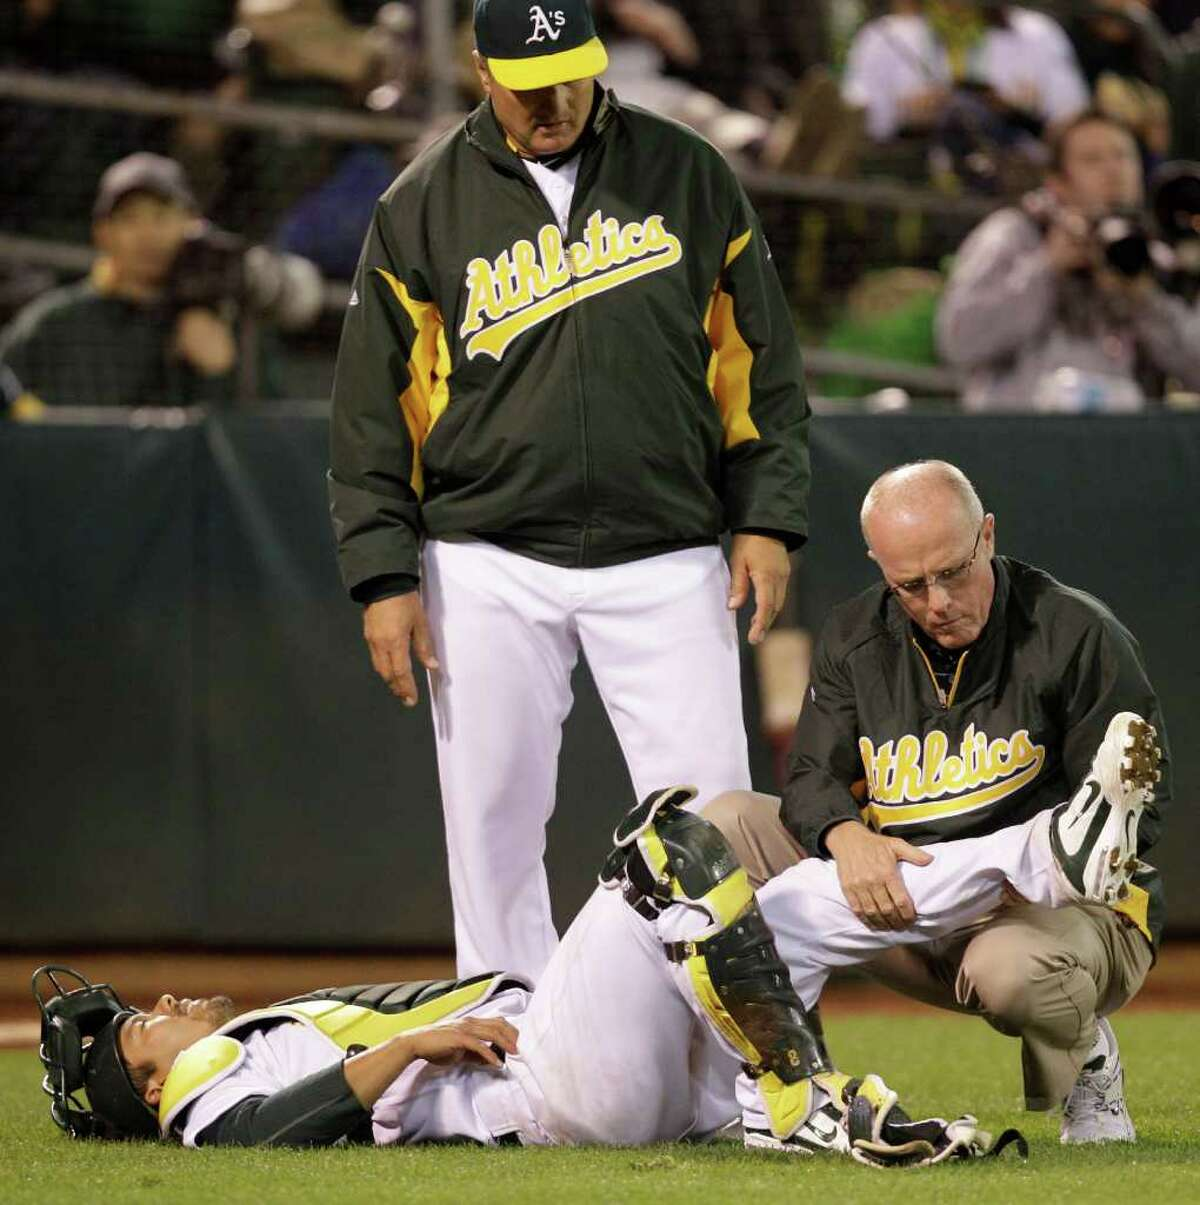 Oakland Athletics catcher Kurt Suzuki has his leg examined by assistant trainer Walt Horn during the seventh inning of a baseball game against the Seattle Mariners Friday, April 1, 2011, in Oakland, Calif.